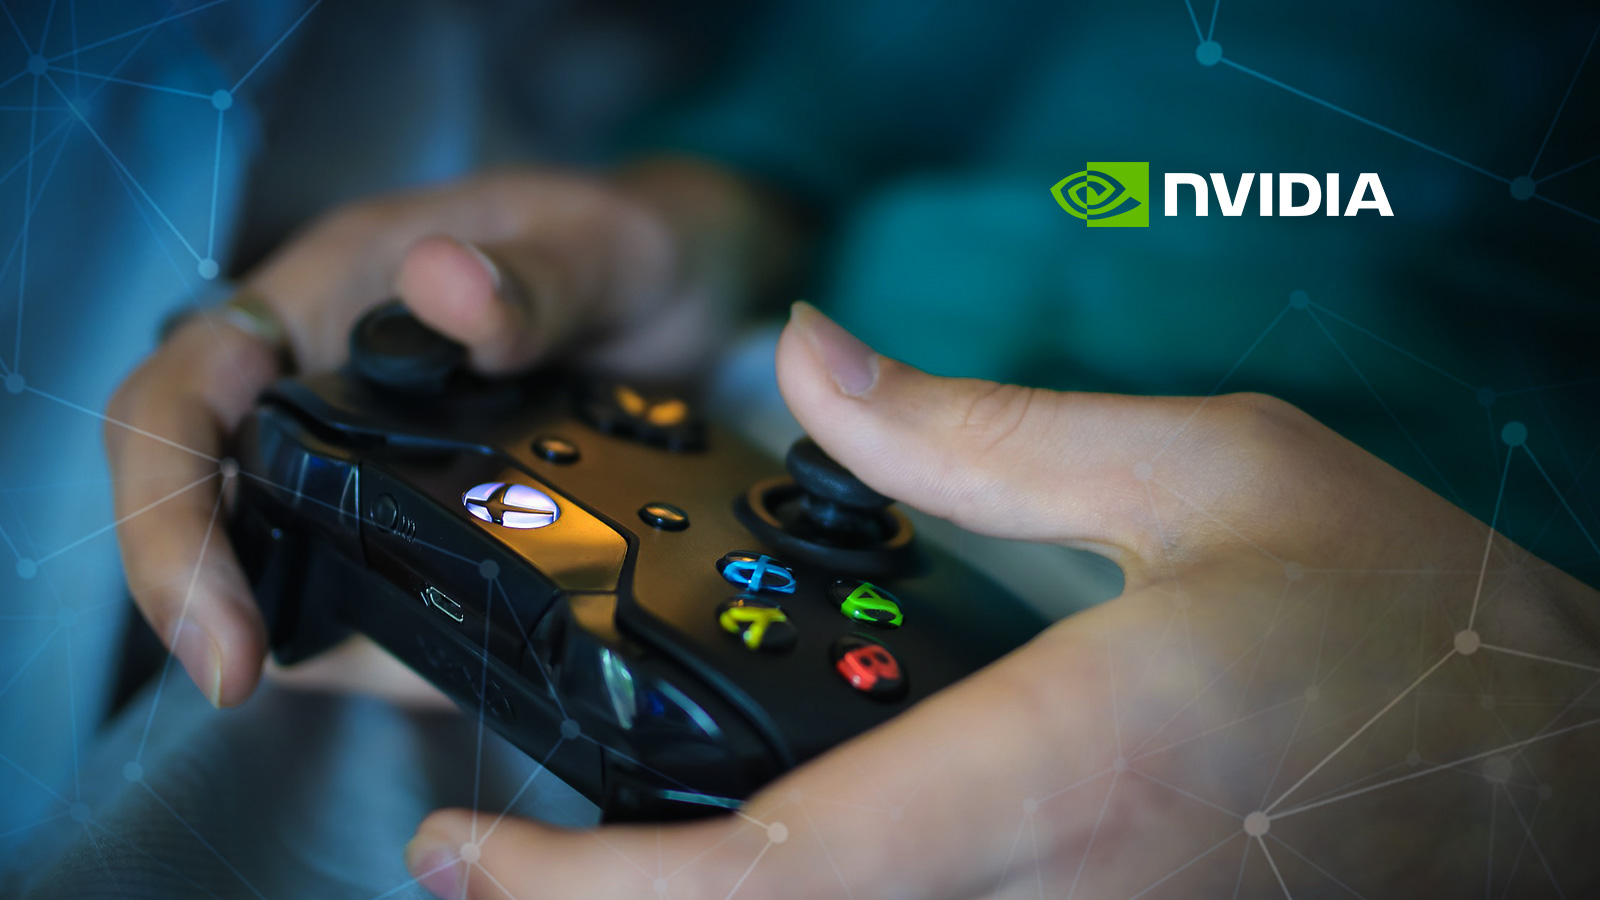 With Great Power Comes Great Gaming: NVIDIA Launches GeForce